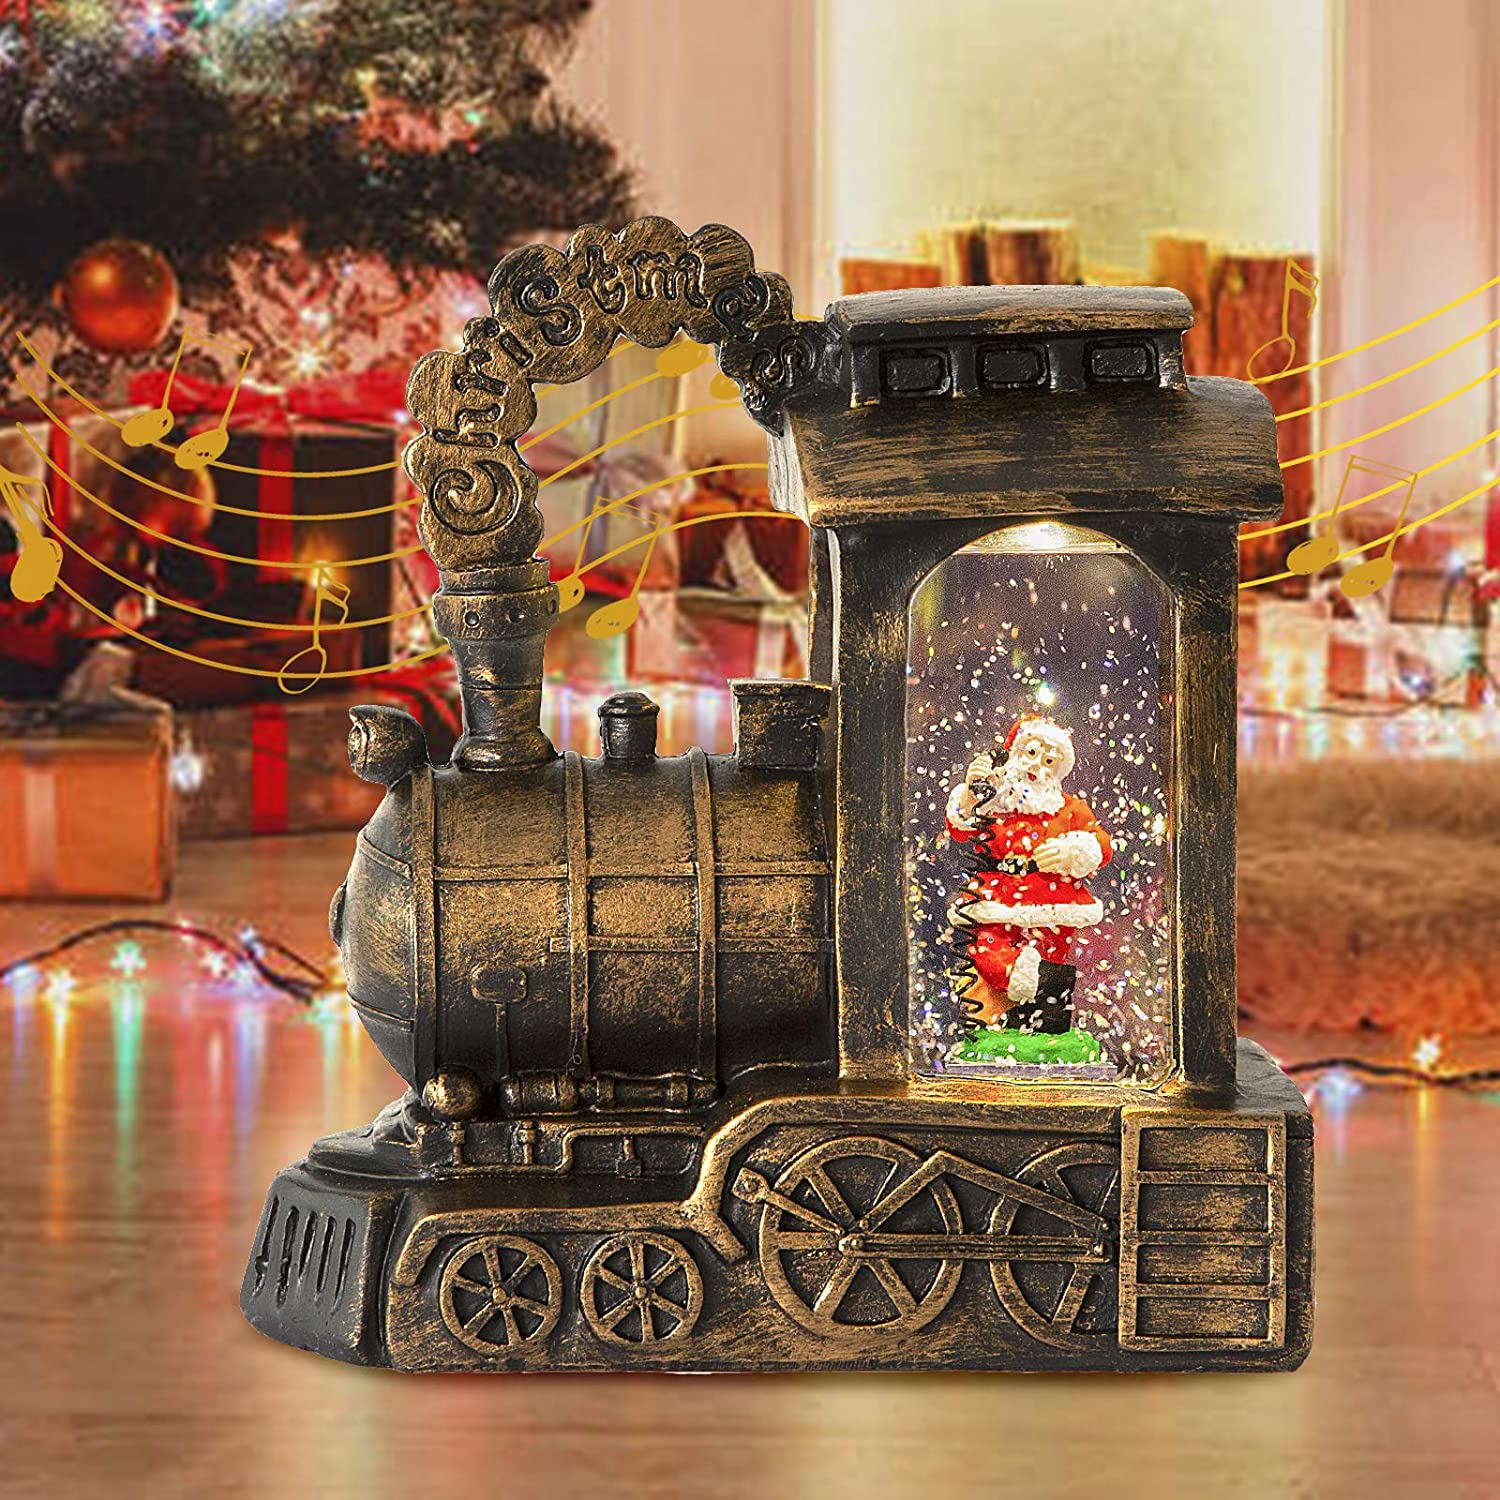 Lighted Musical Christmas Lantern - Retro Snow Globe Train Lantern with Swirling Glitter for Christmas Home Decor, Tabletop Decorative, Gifts - Battery Operated & USB Operated (Santa)